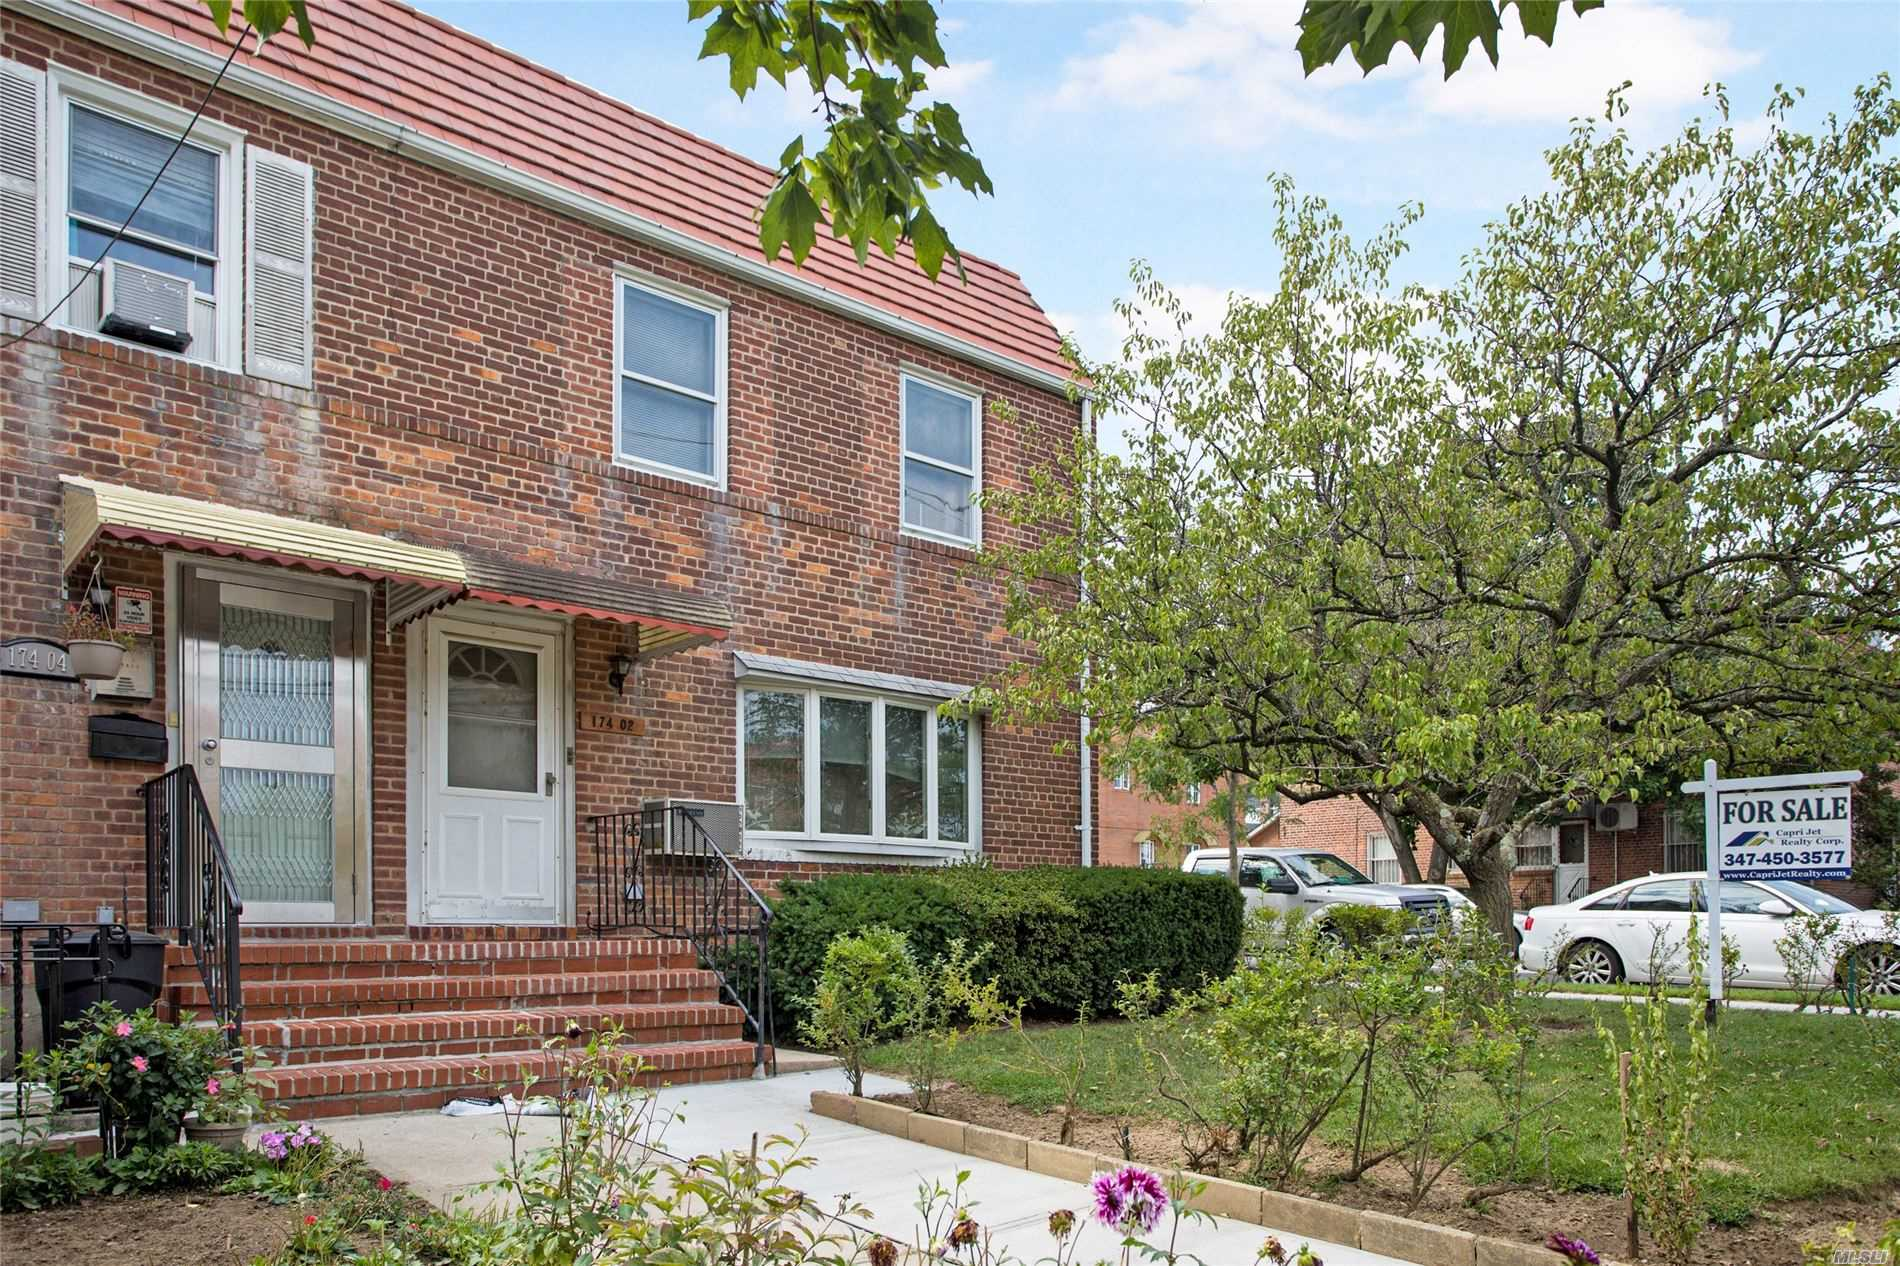 Property for sale at 174-02 Jewel Avenue, Fresh Meadows NY 11365, Fresh Meadows,  New York 11365